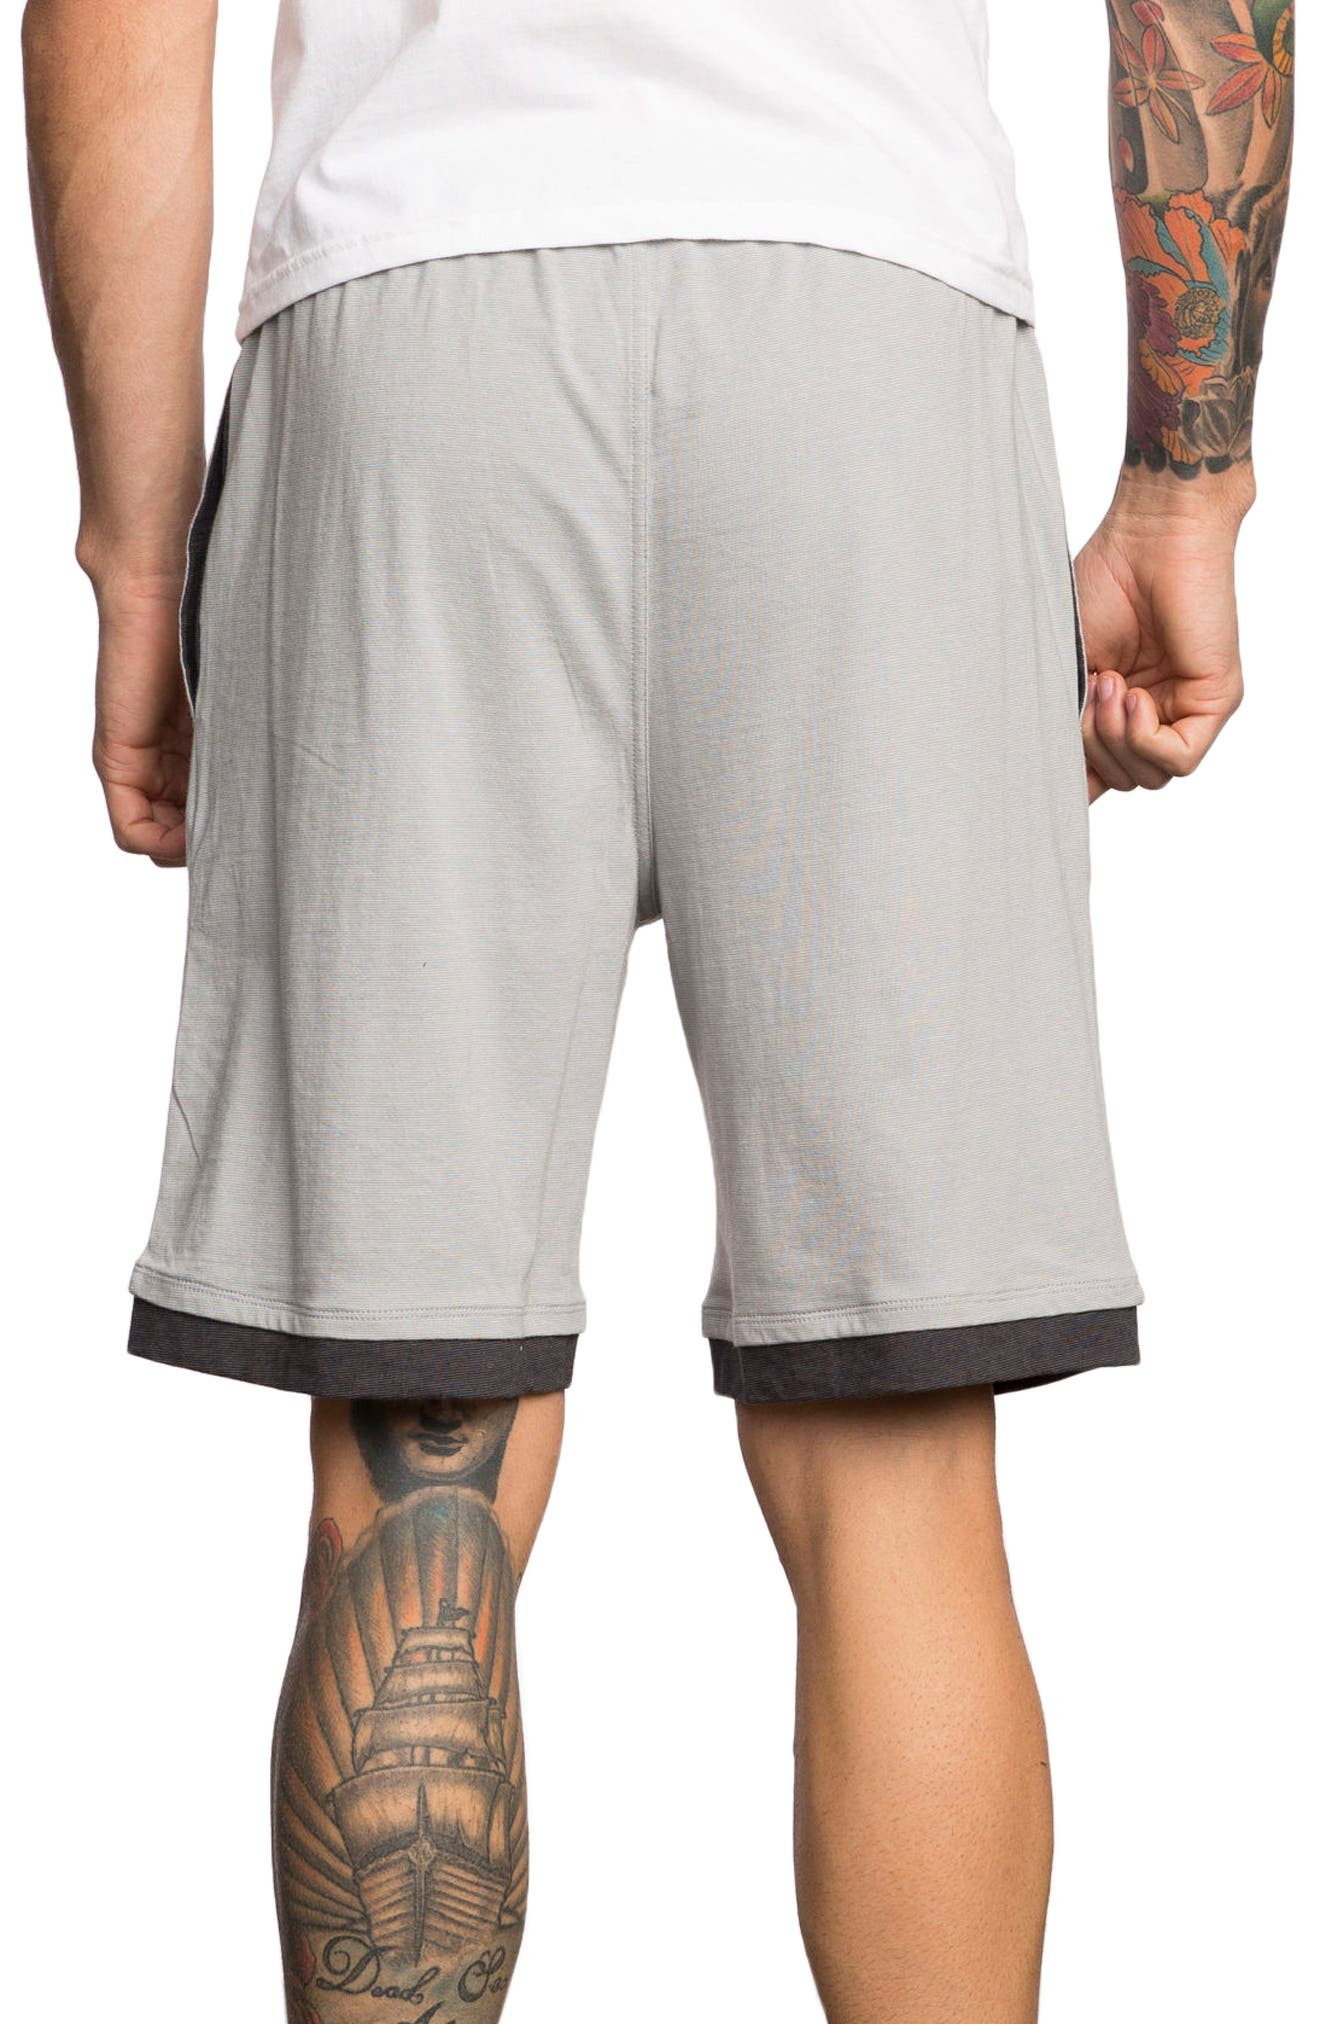 Layers Sport Shorts,                             Alternate thumbnail 2, color,                             Athletic Heather